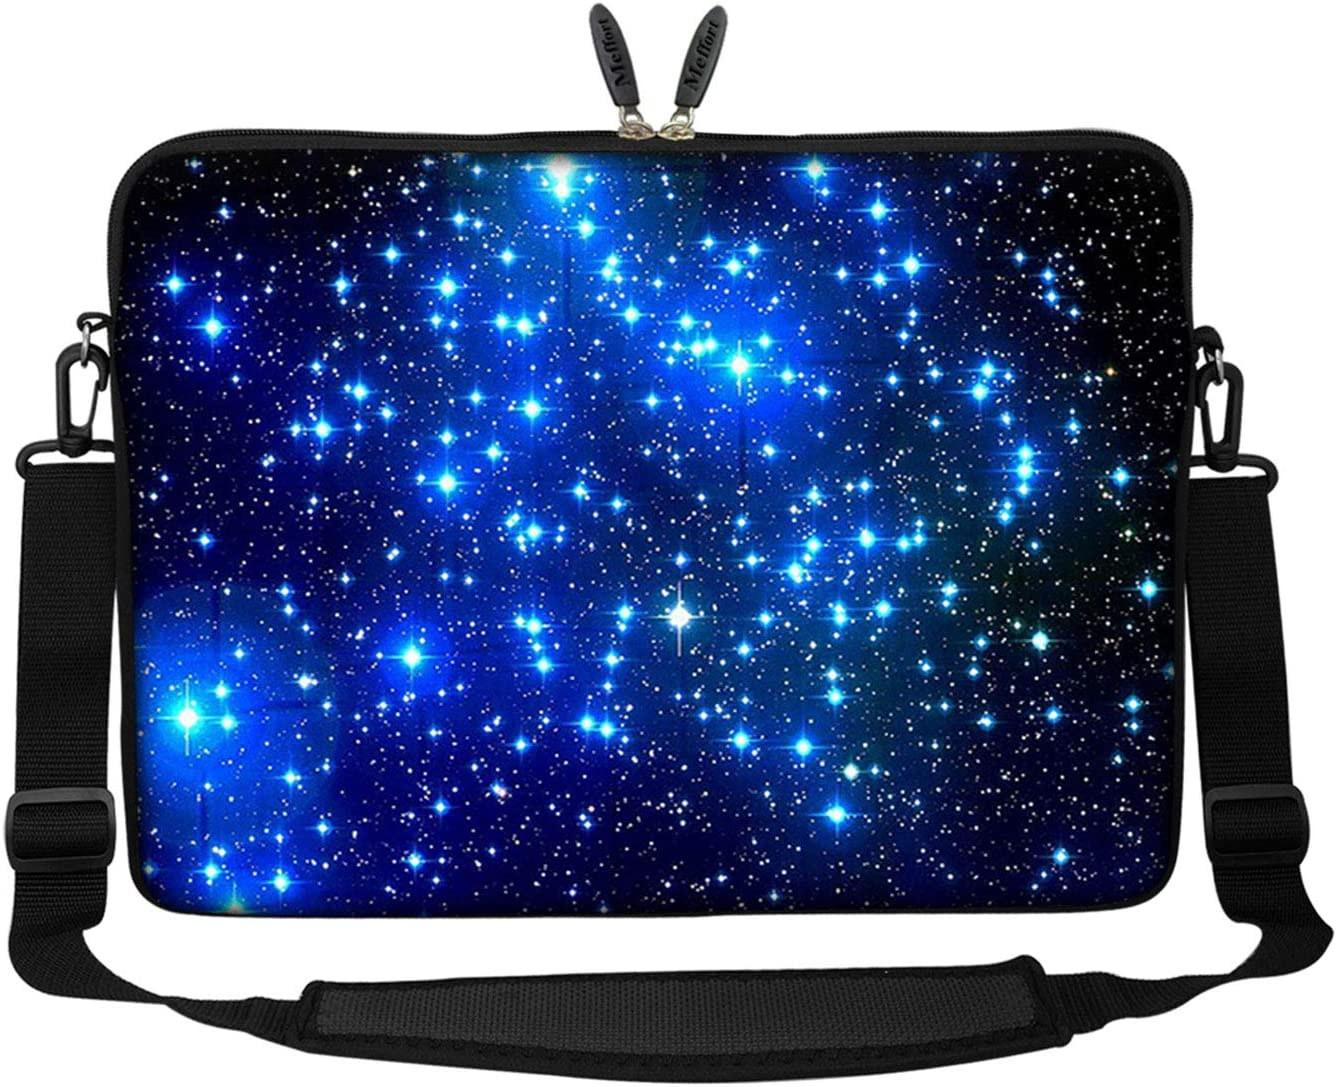 Meffort Inc 15 15.6 inch Neoprene Laptop Sleeve Bag Carrying Case with Hidden Handle and Adjustable Shoulder Strap - Galaxy Stars